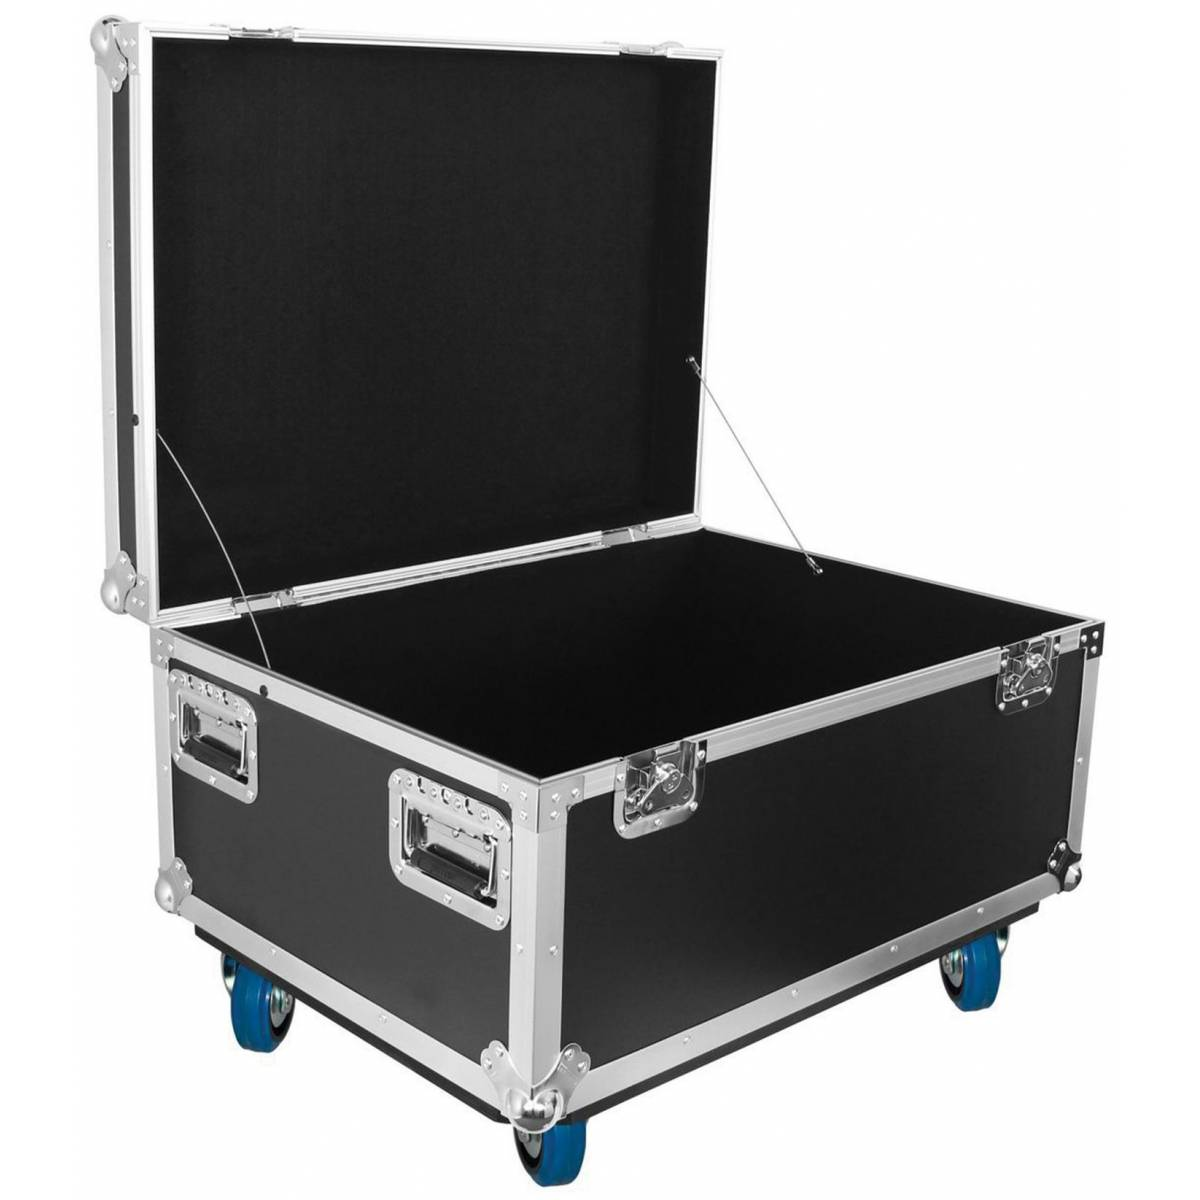 Power Acoustics - Flight cases FT L MK2